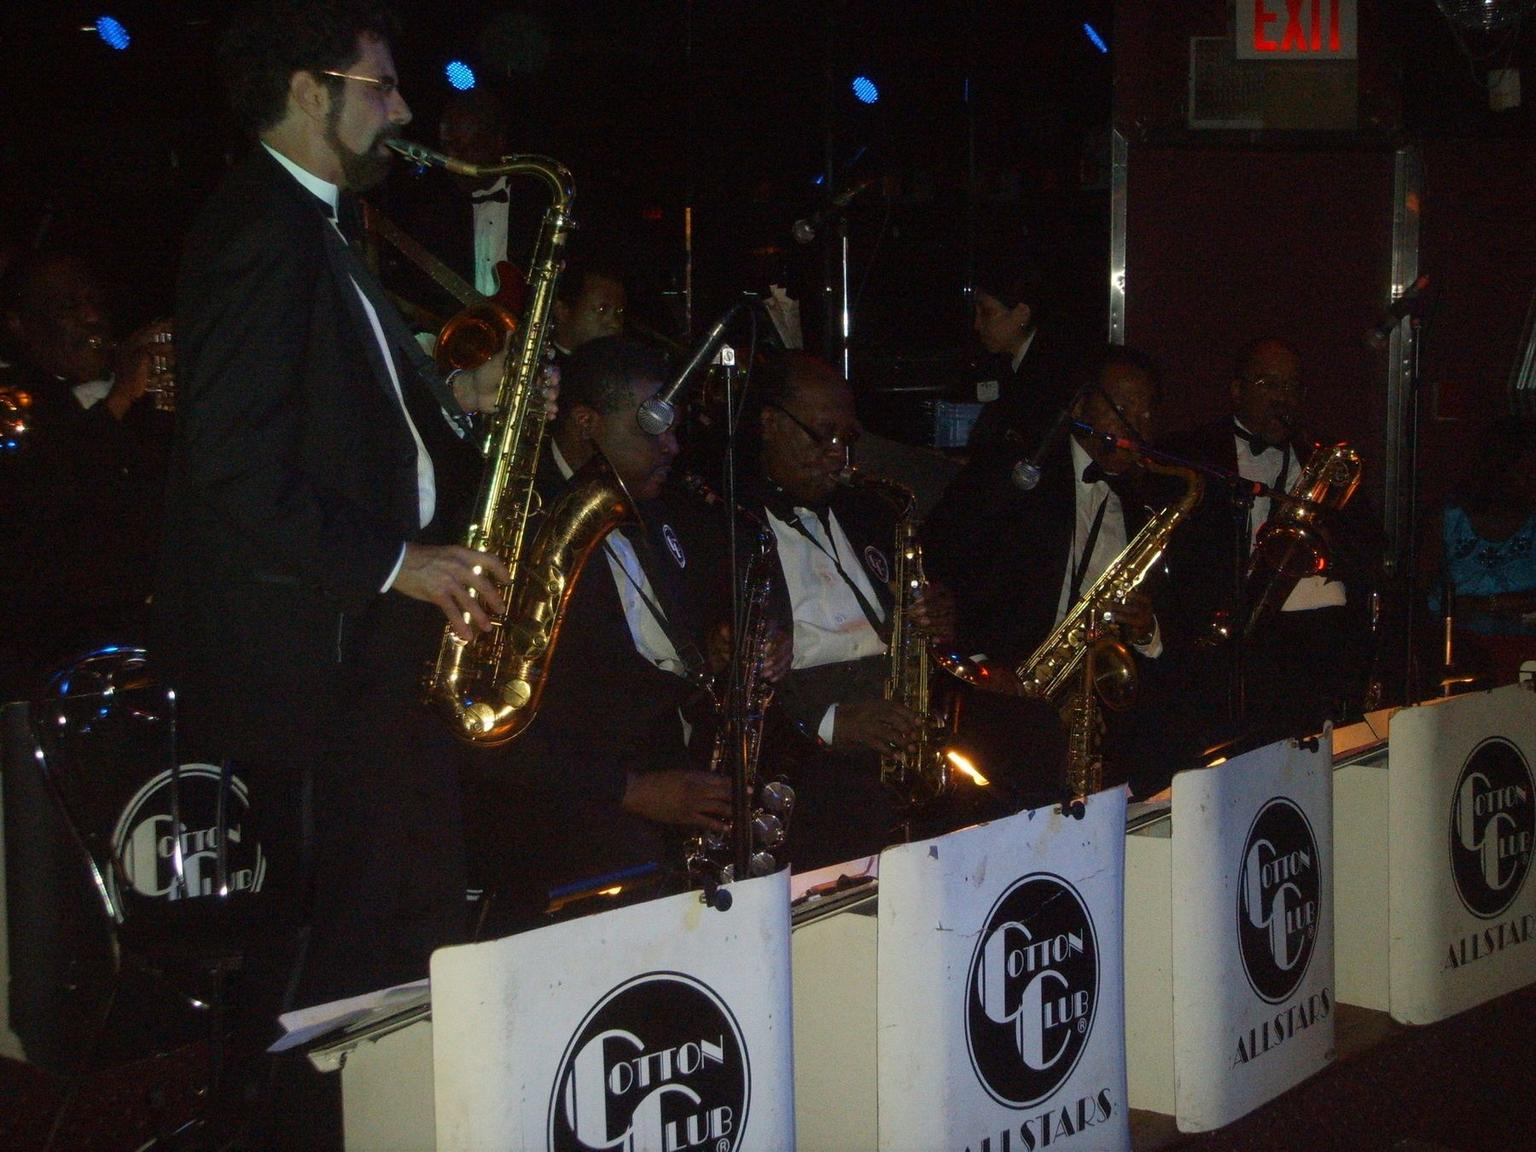 Monday Night at the Cotton Club